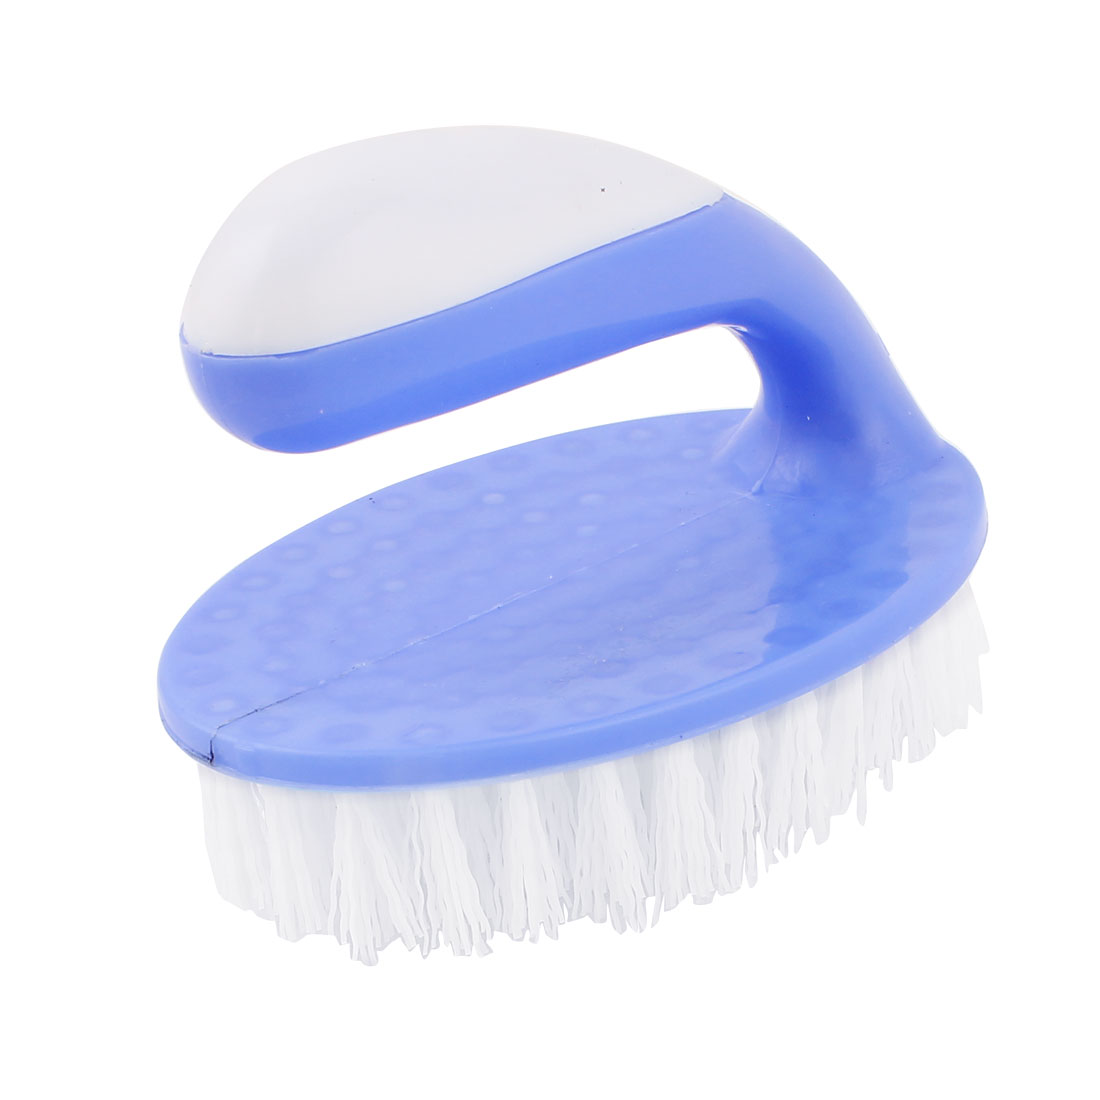 Plastic Oval Shaped Base Clothes Shoes Cleaning Washing Scrubbing Brush Blue